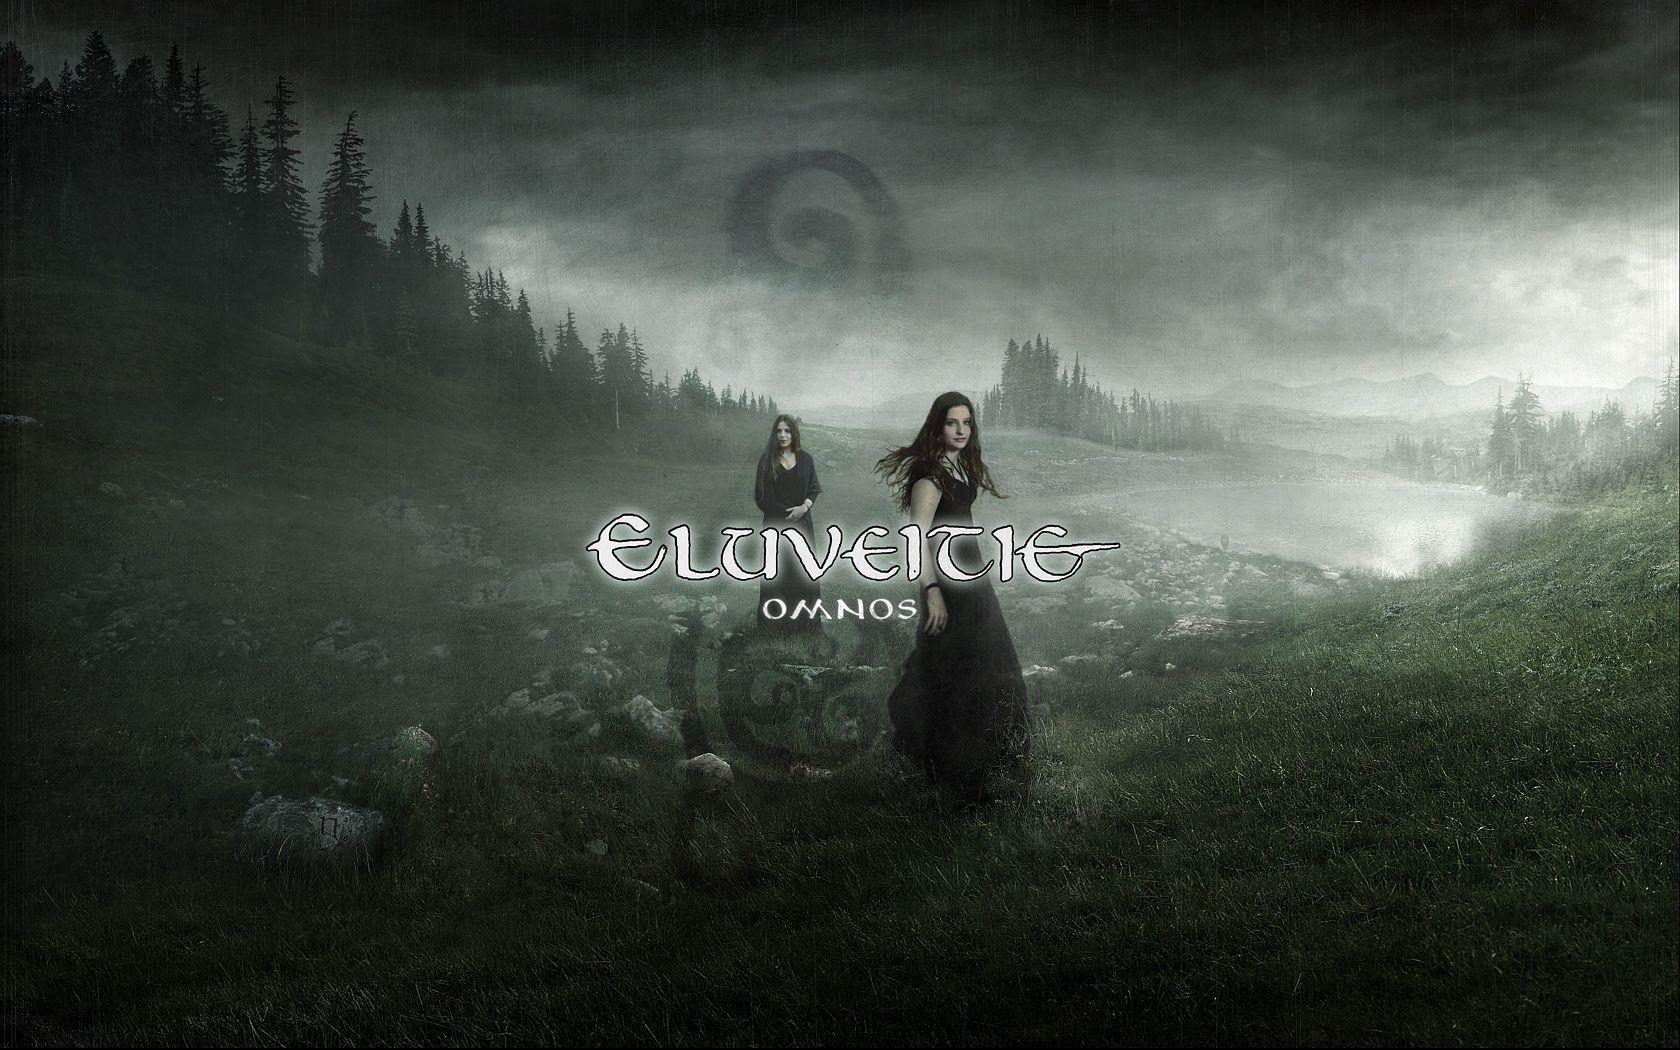 Eluveitie wallpapers wallpaper cave - Wallpaper photos ...